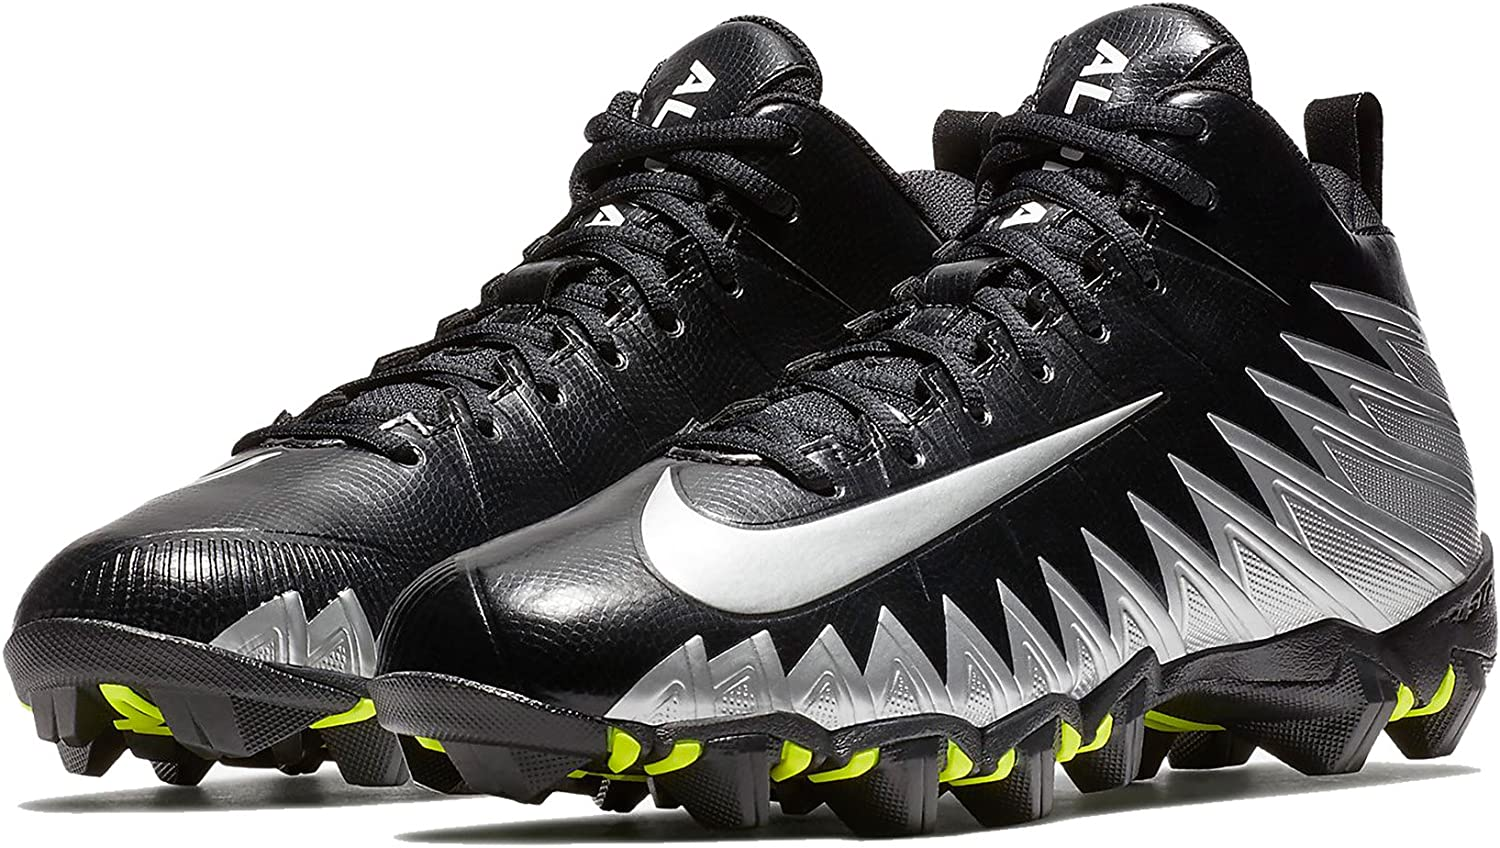 Nike Men's Alpha Menace Shark Wide Football Cleat Black/Metallic Silver Size 10 M US